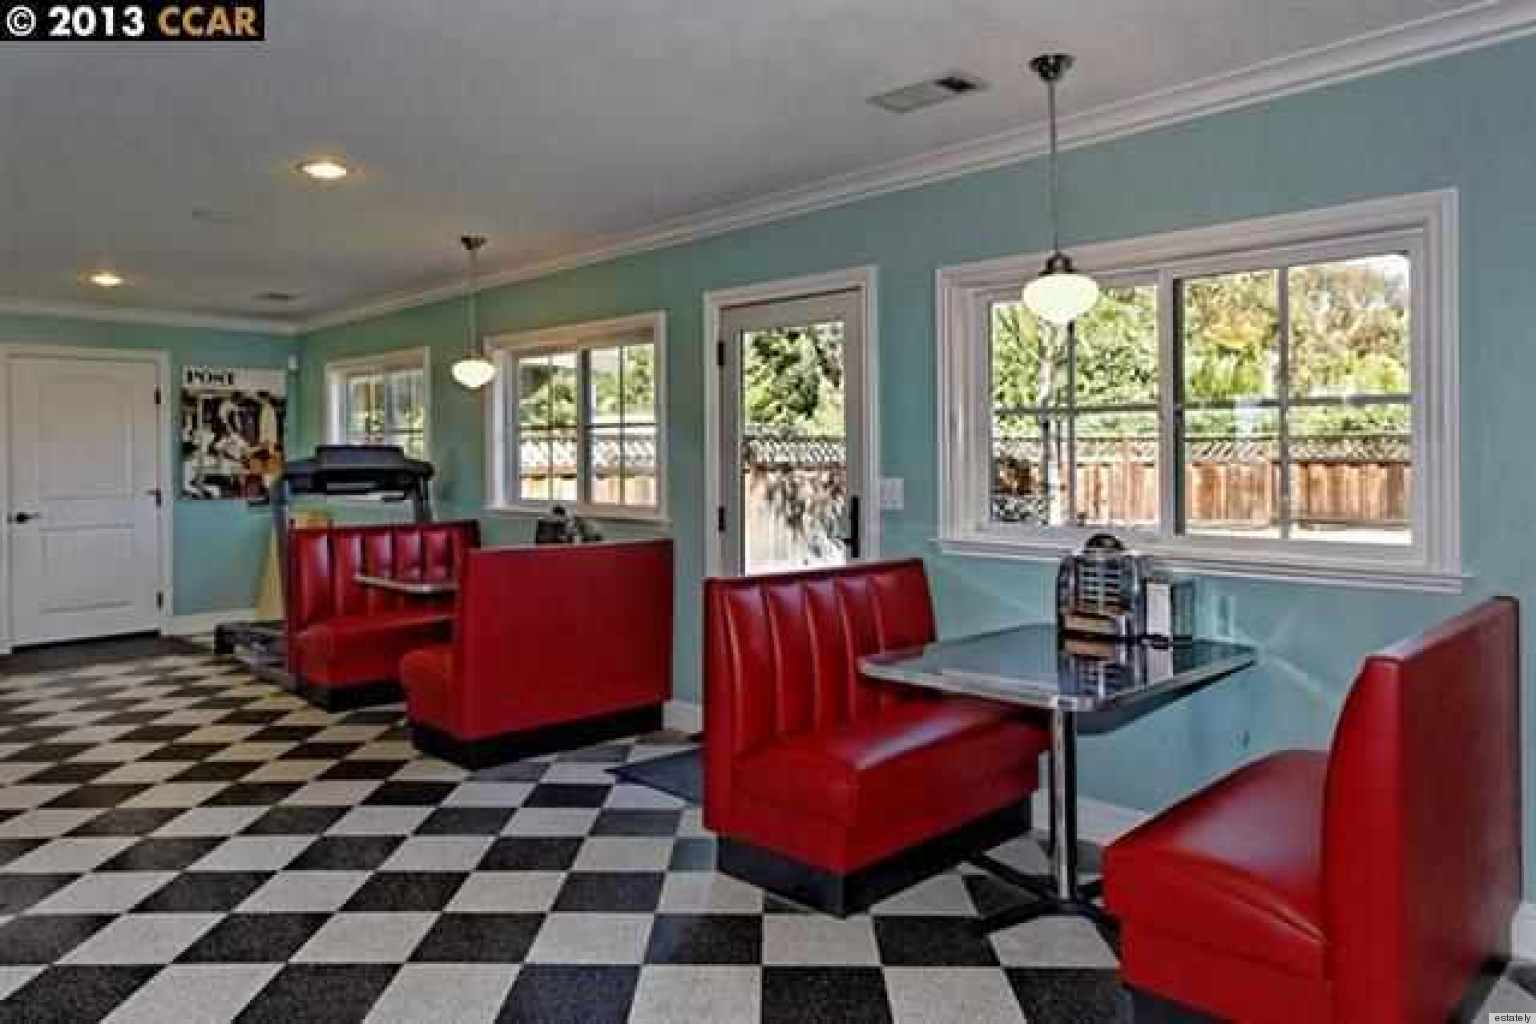 7 Homes For Sale With A 1950s Style Diner Inside Huffpost